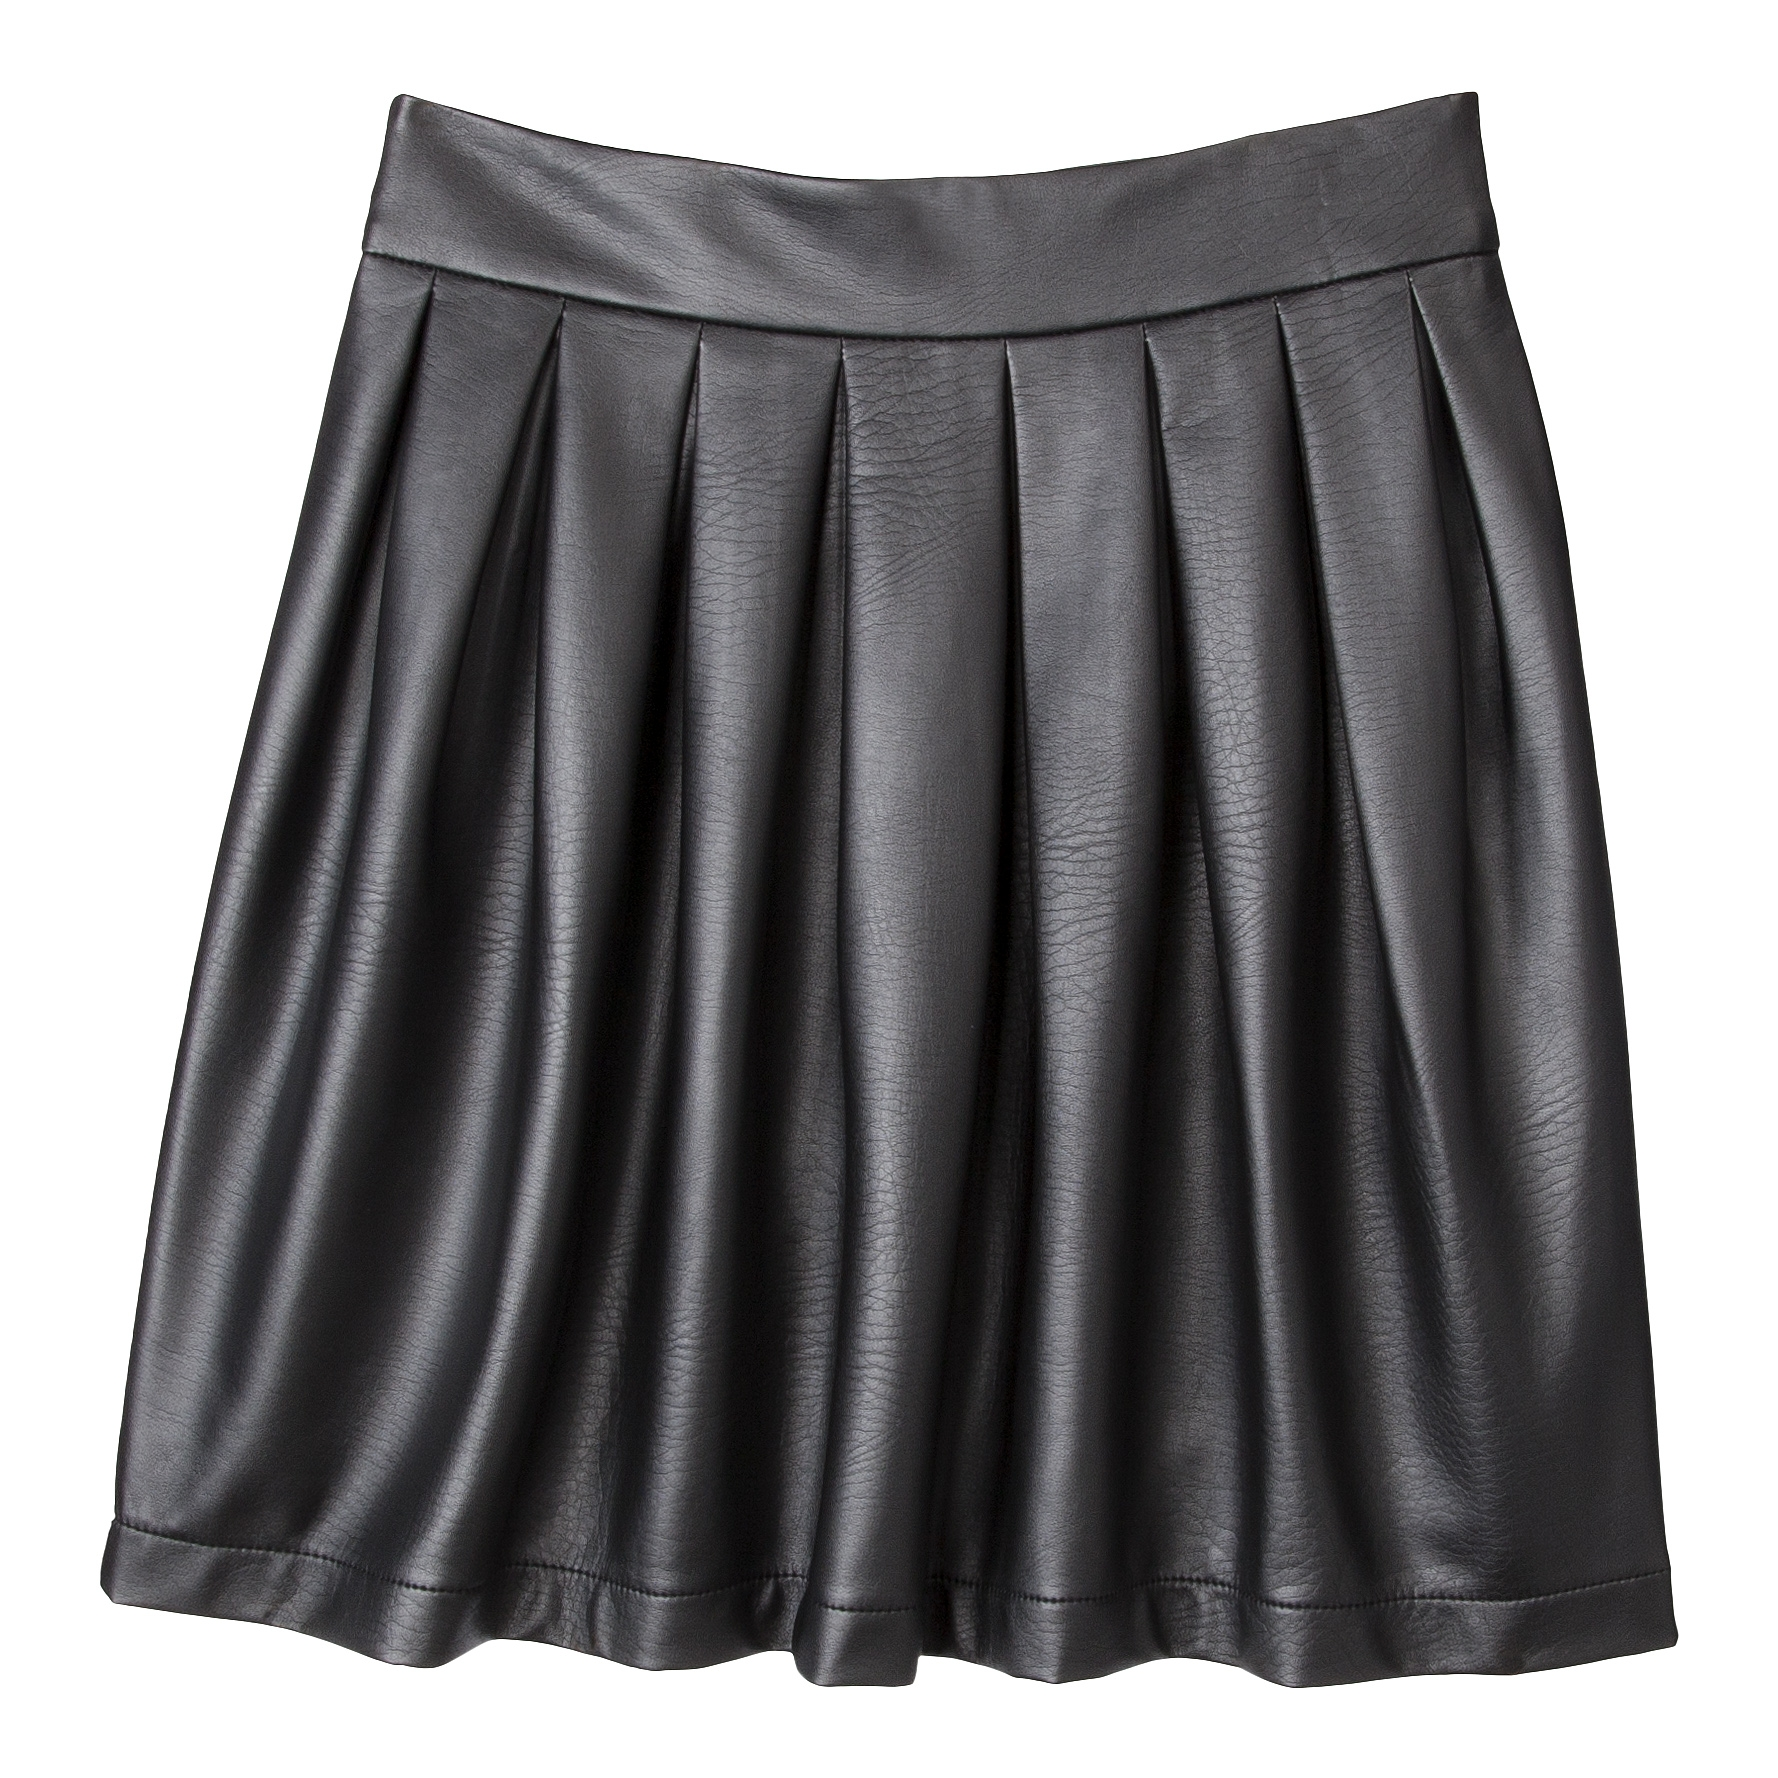 If you prefer your skirts with some swing and sway, try on this pleated Xhilaration style ($25).